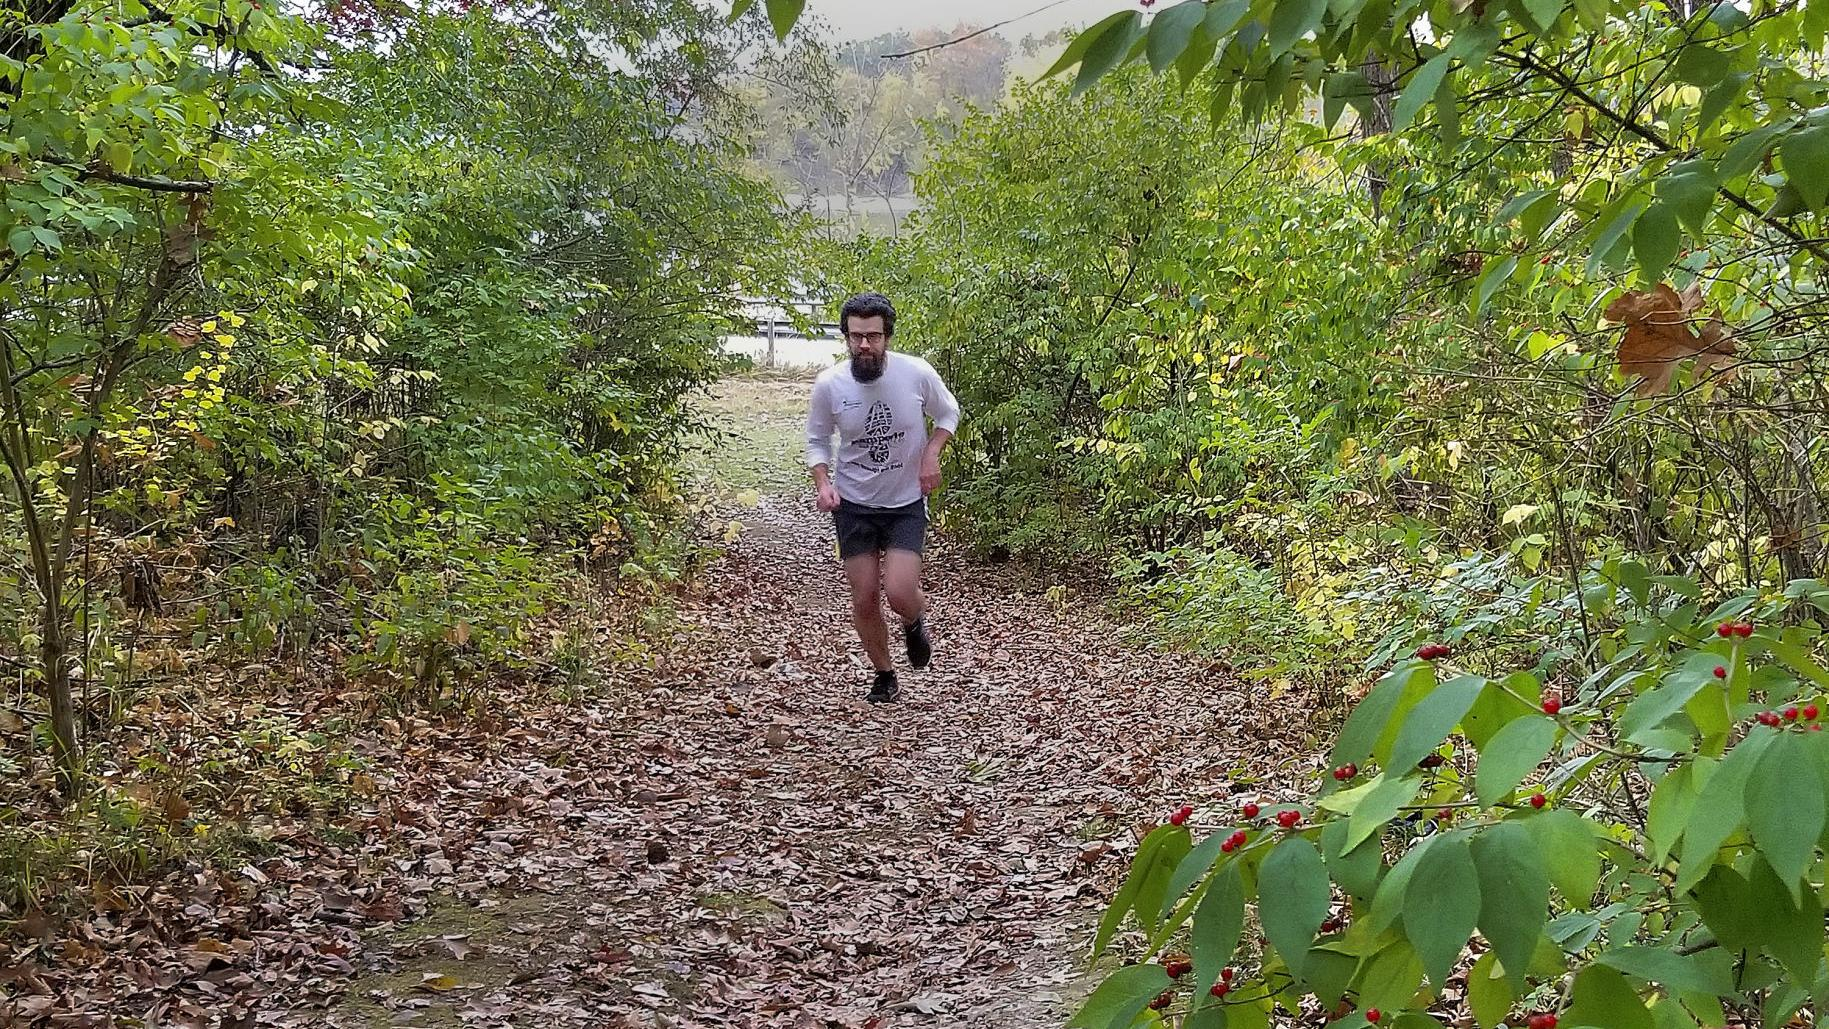 Watch now: Trail running at Comlara Park 'good for your soul'